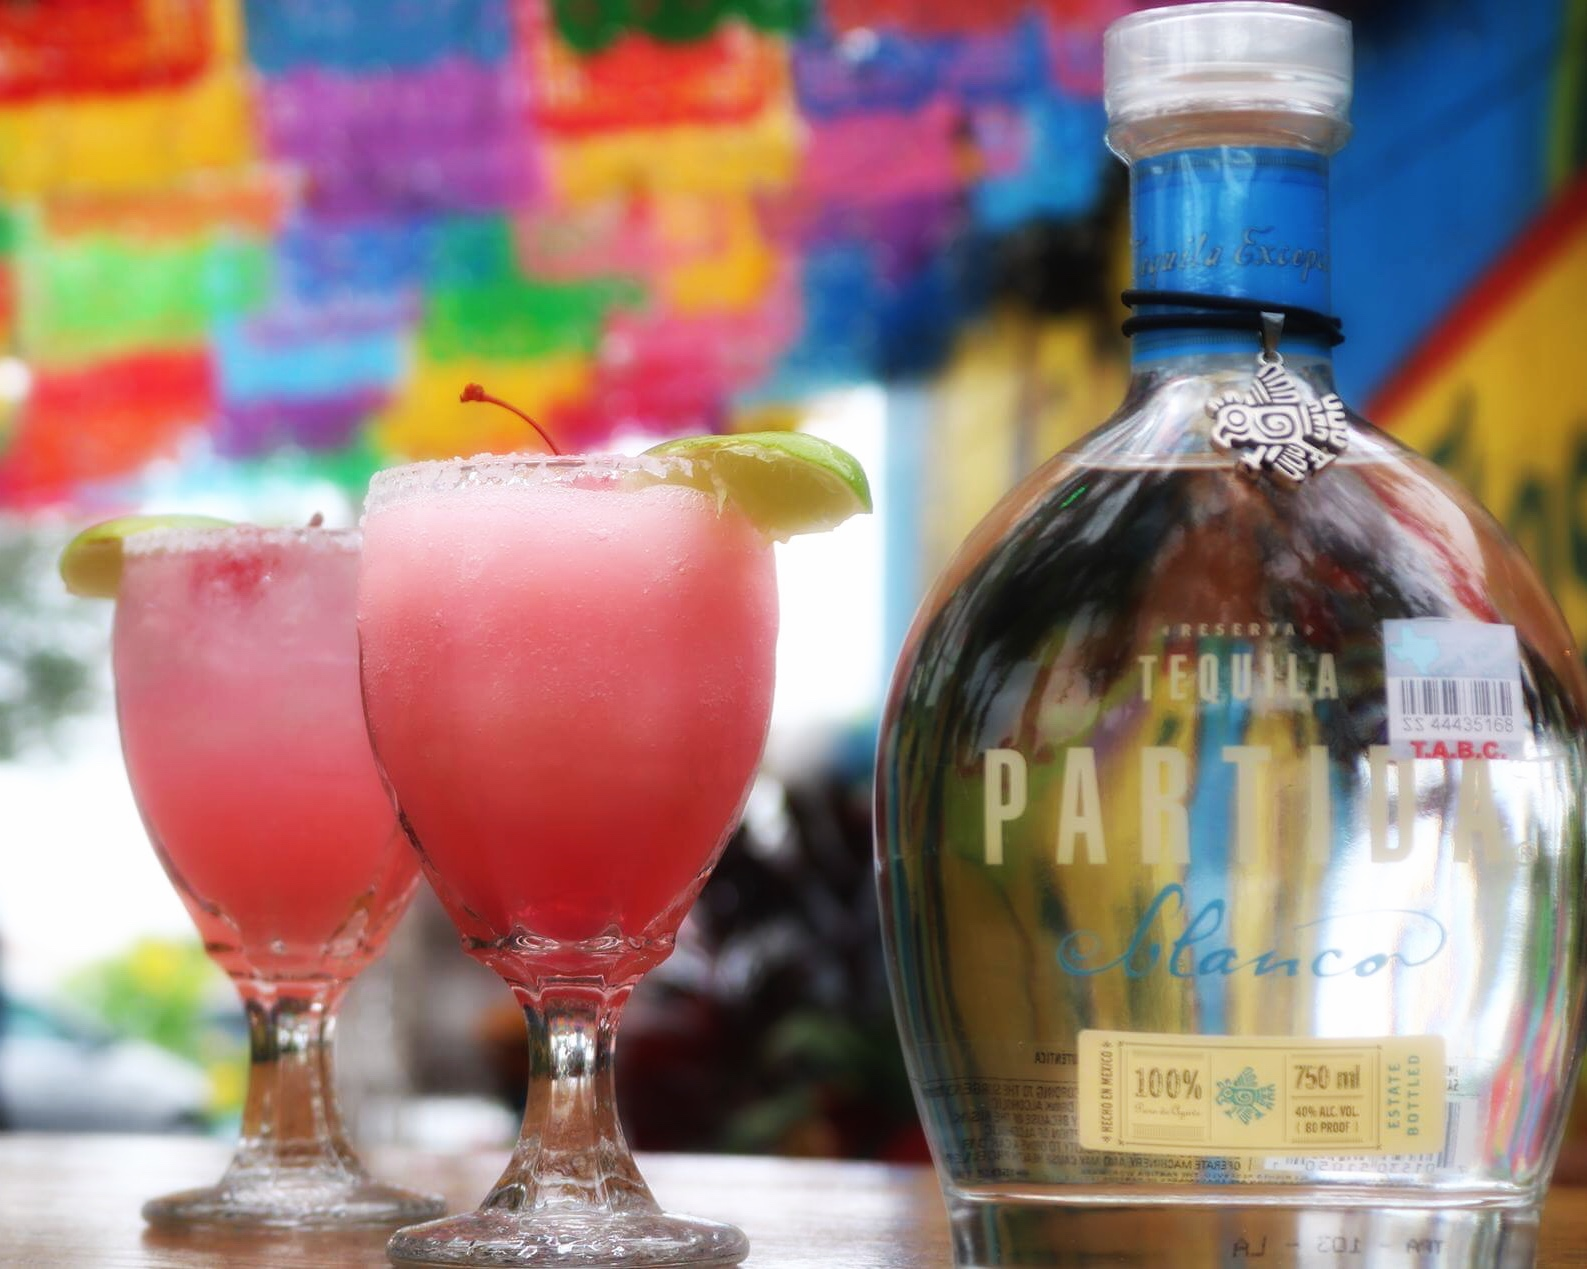 La Familia Cortez partners with Partida Tequila for Breast Cancer Awareness Month